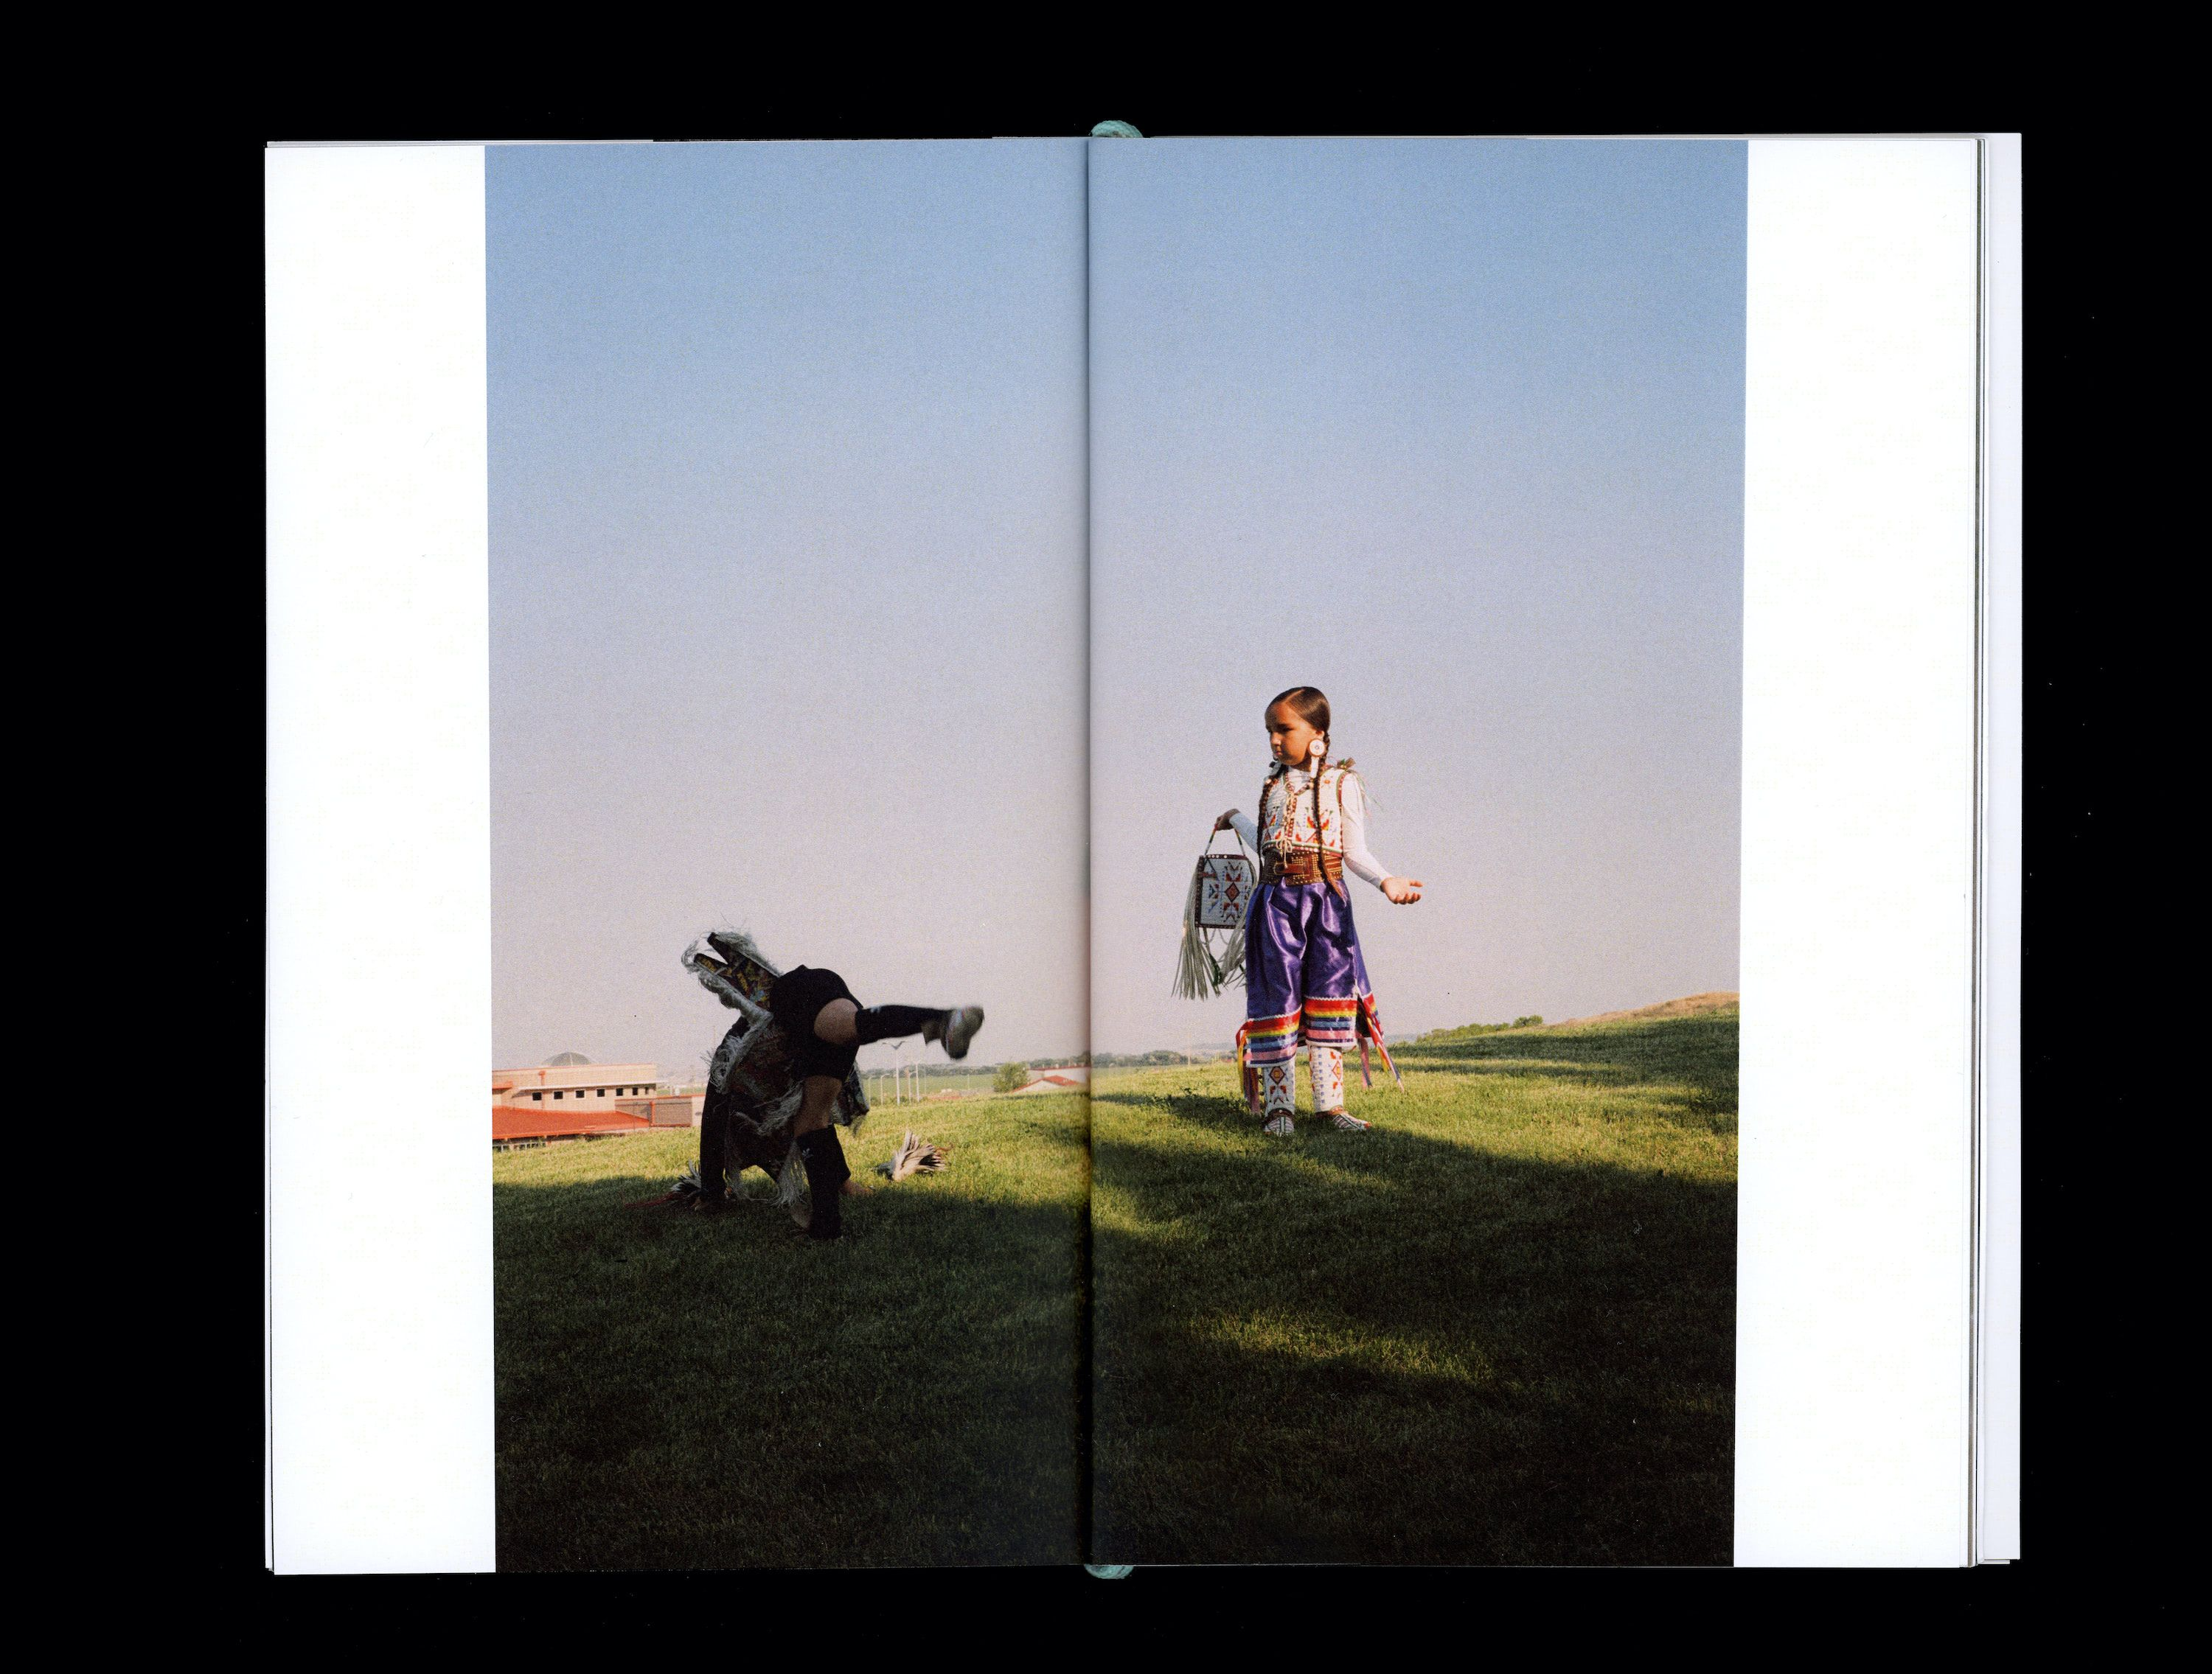 Photograph in book of Tokala & Ataya Little Sky playing on grassy hill